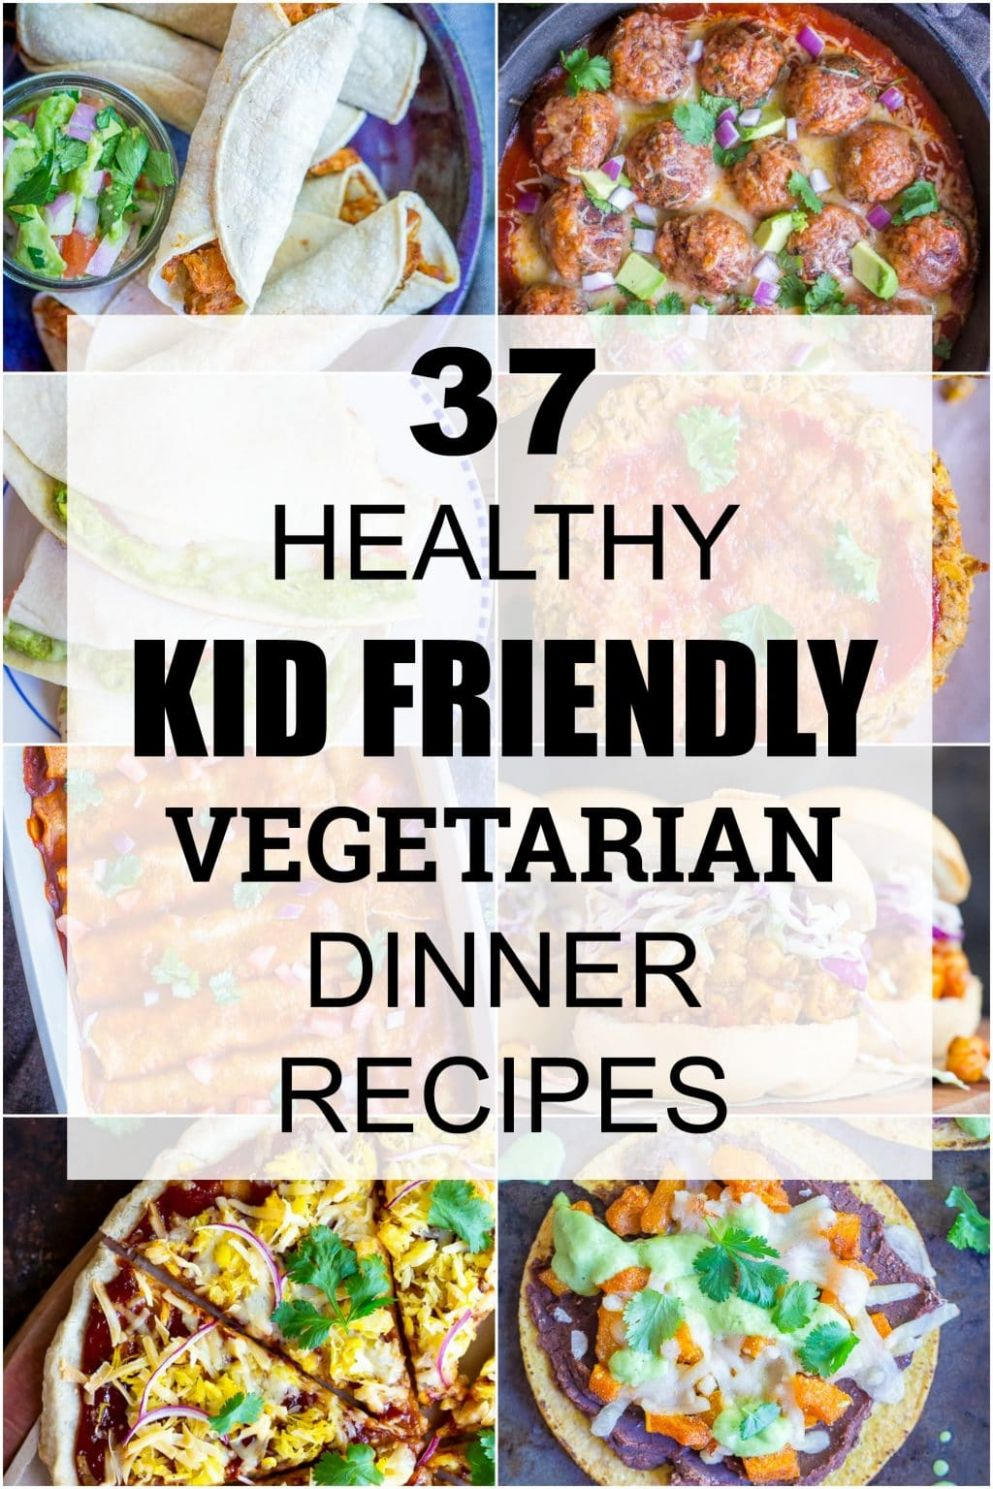 9 Healthy Kid Friendly Vegetarian Dinner Recipes - She Likes Food - Food Recipes For Kids